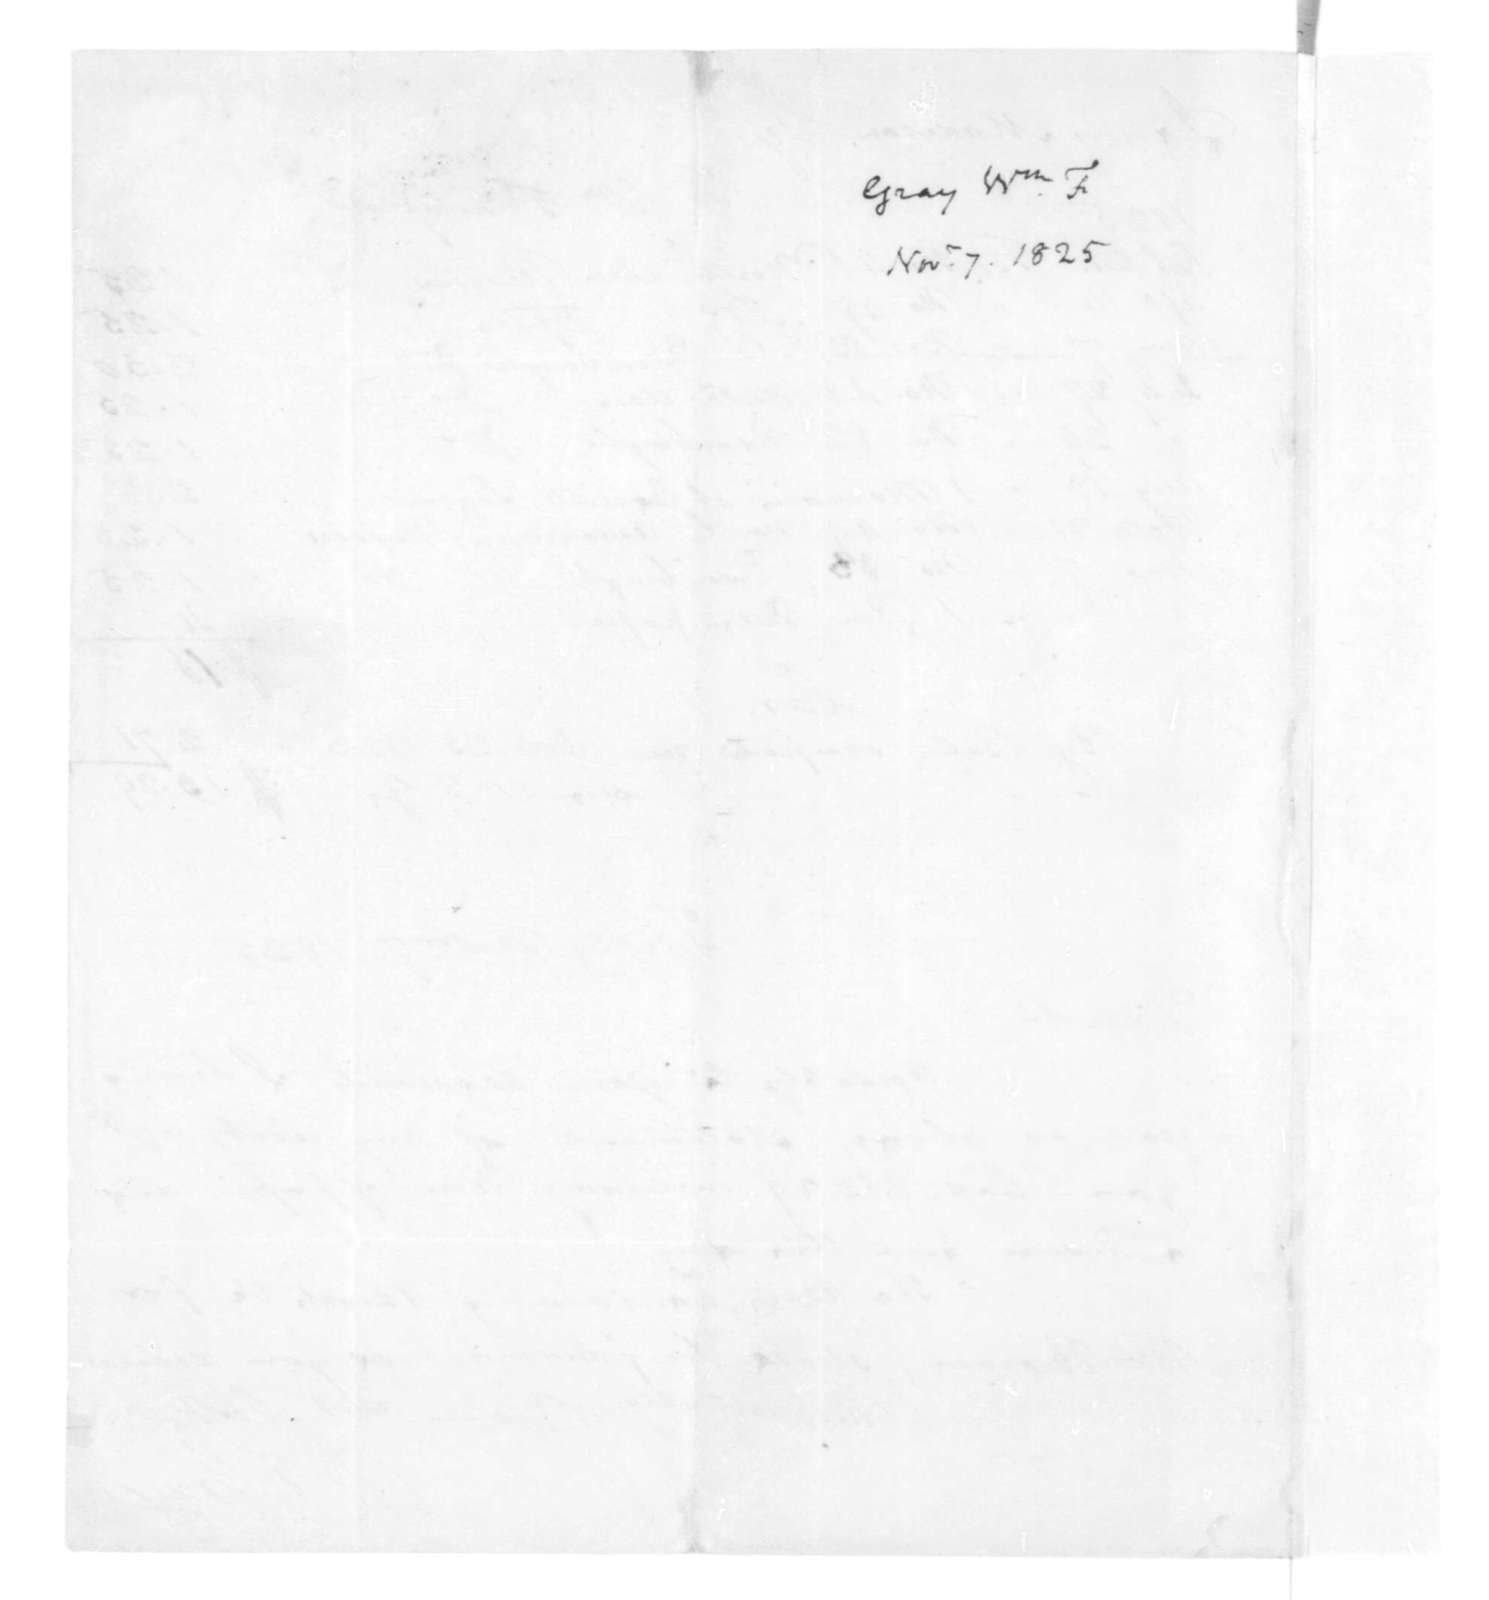 William F. Gray to James Madison, November 7, 1825. With Account.